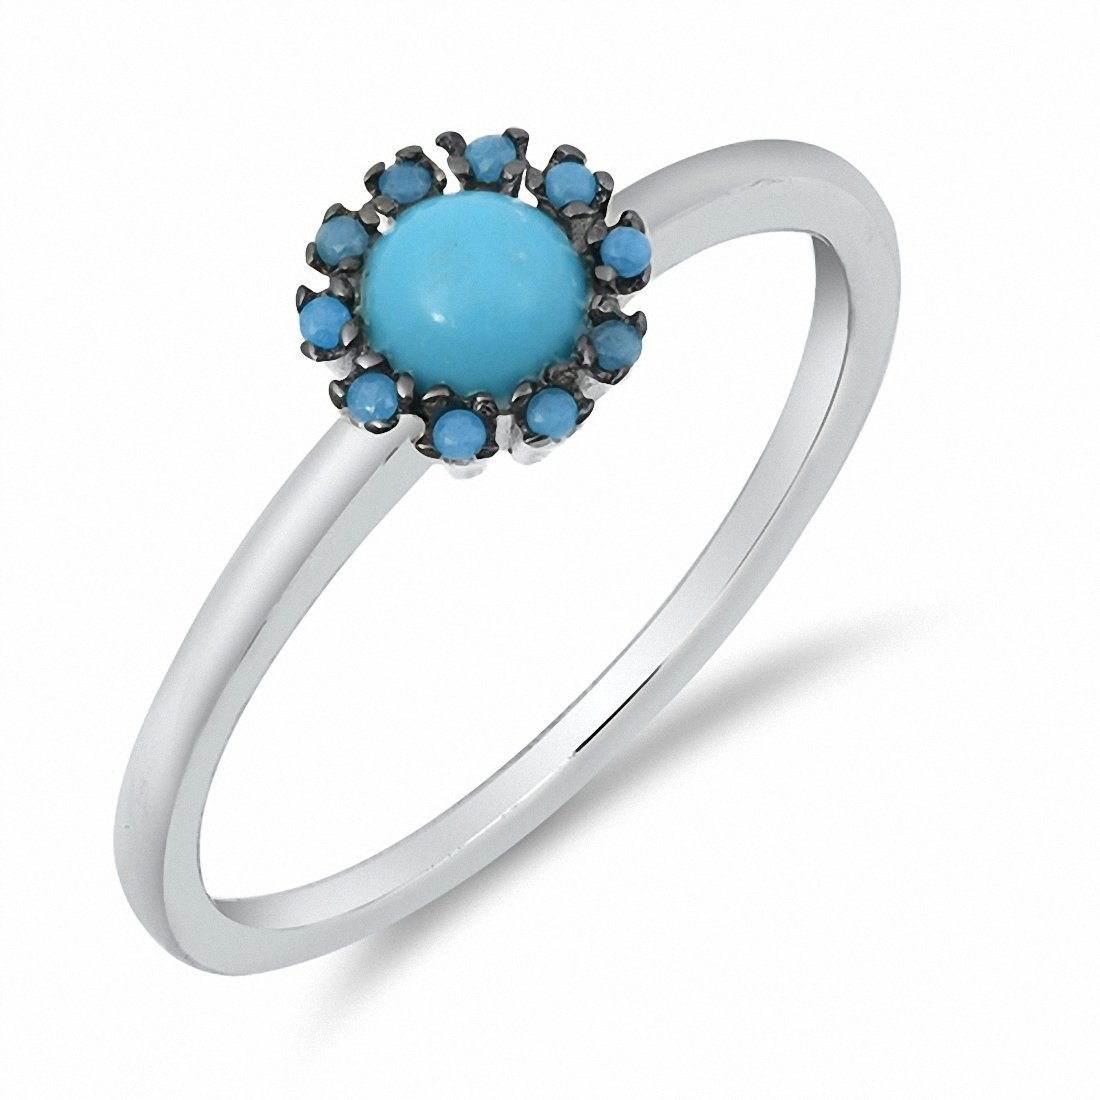 Flower Ring Round Simulated Nano Turquoise CZ 925 Sterling Silver Choose Color